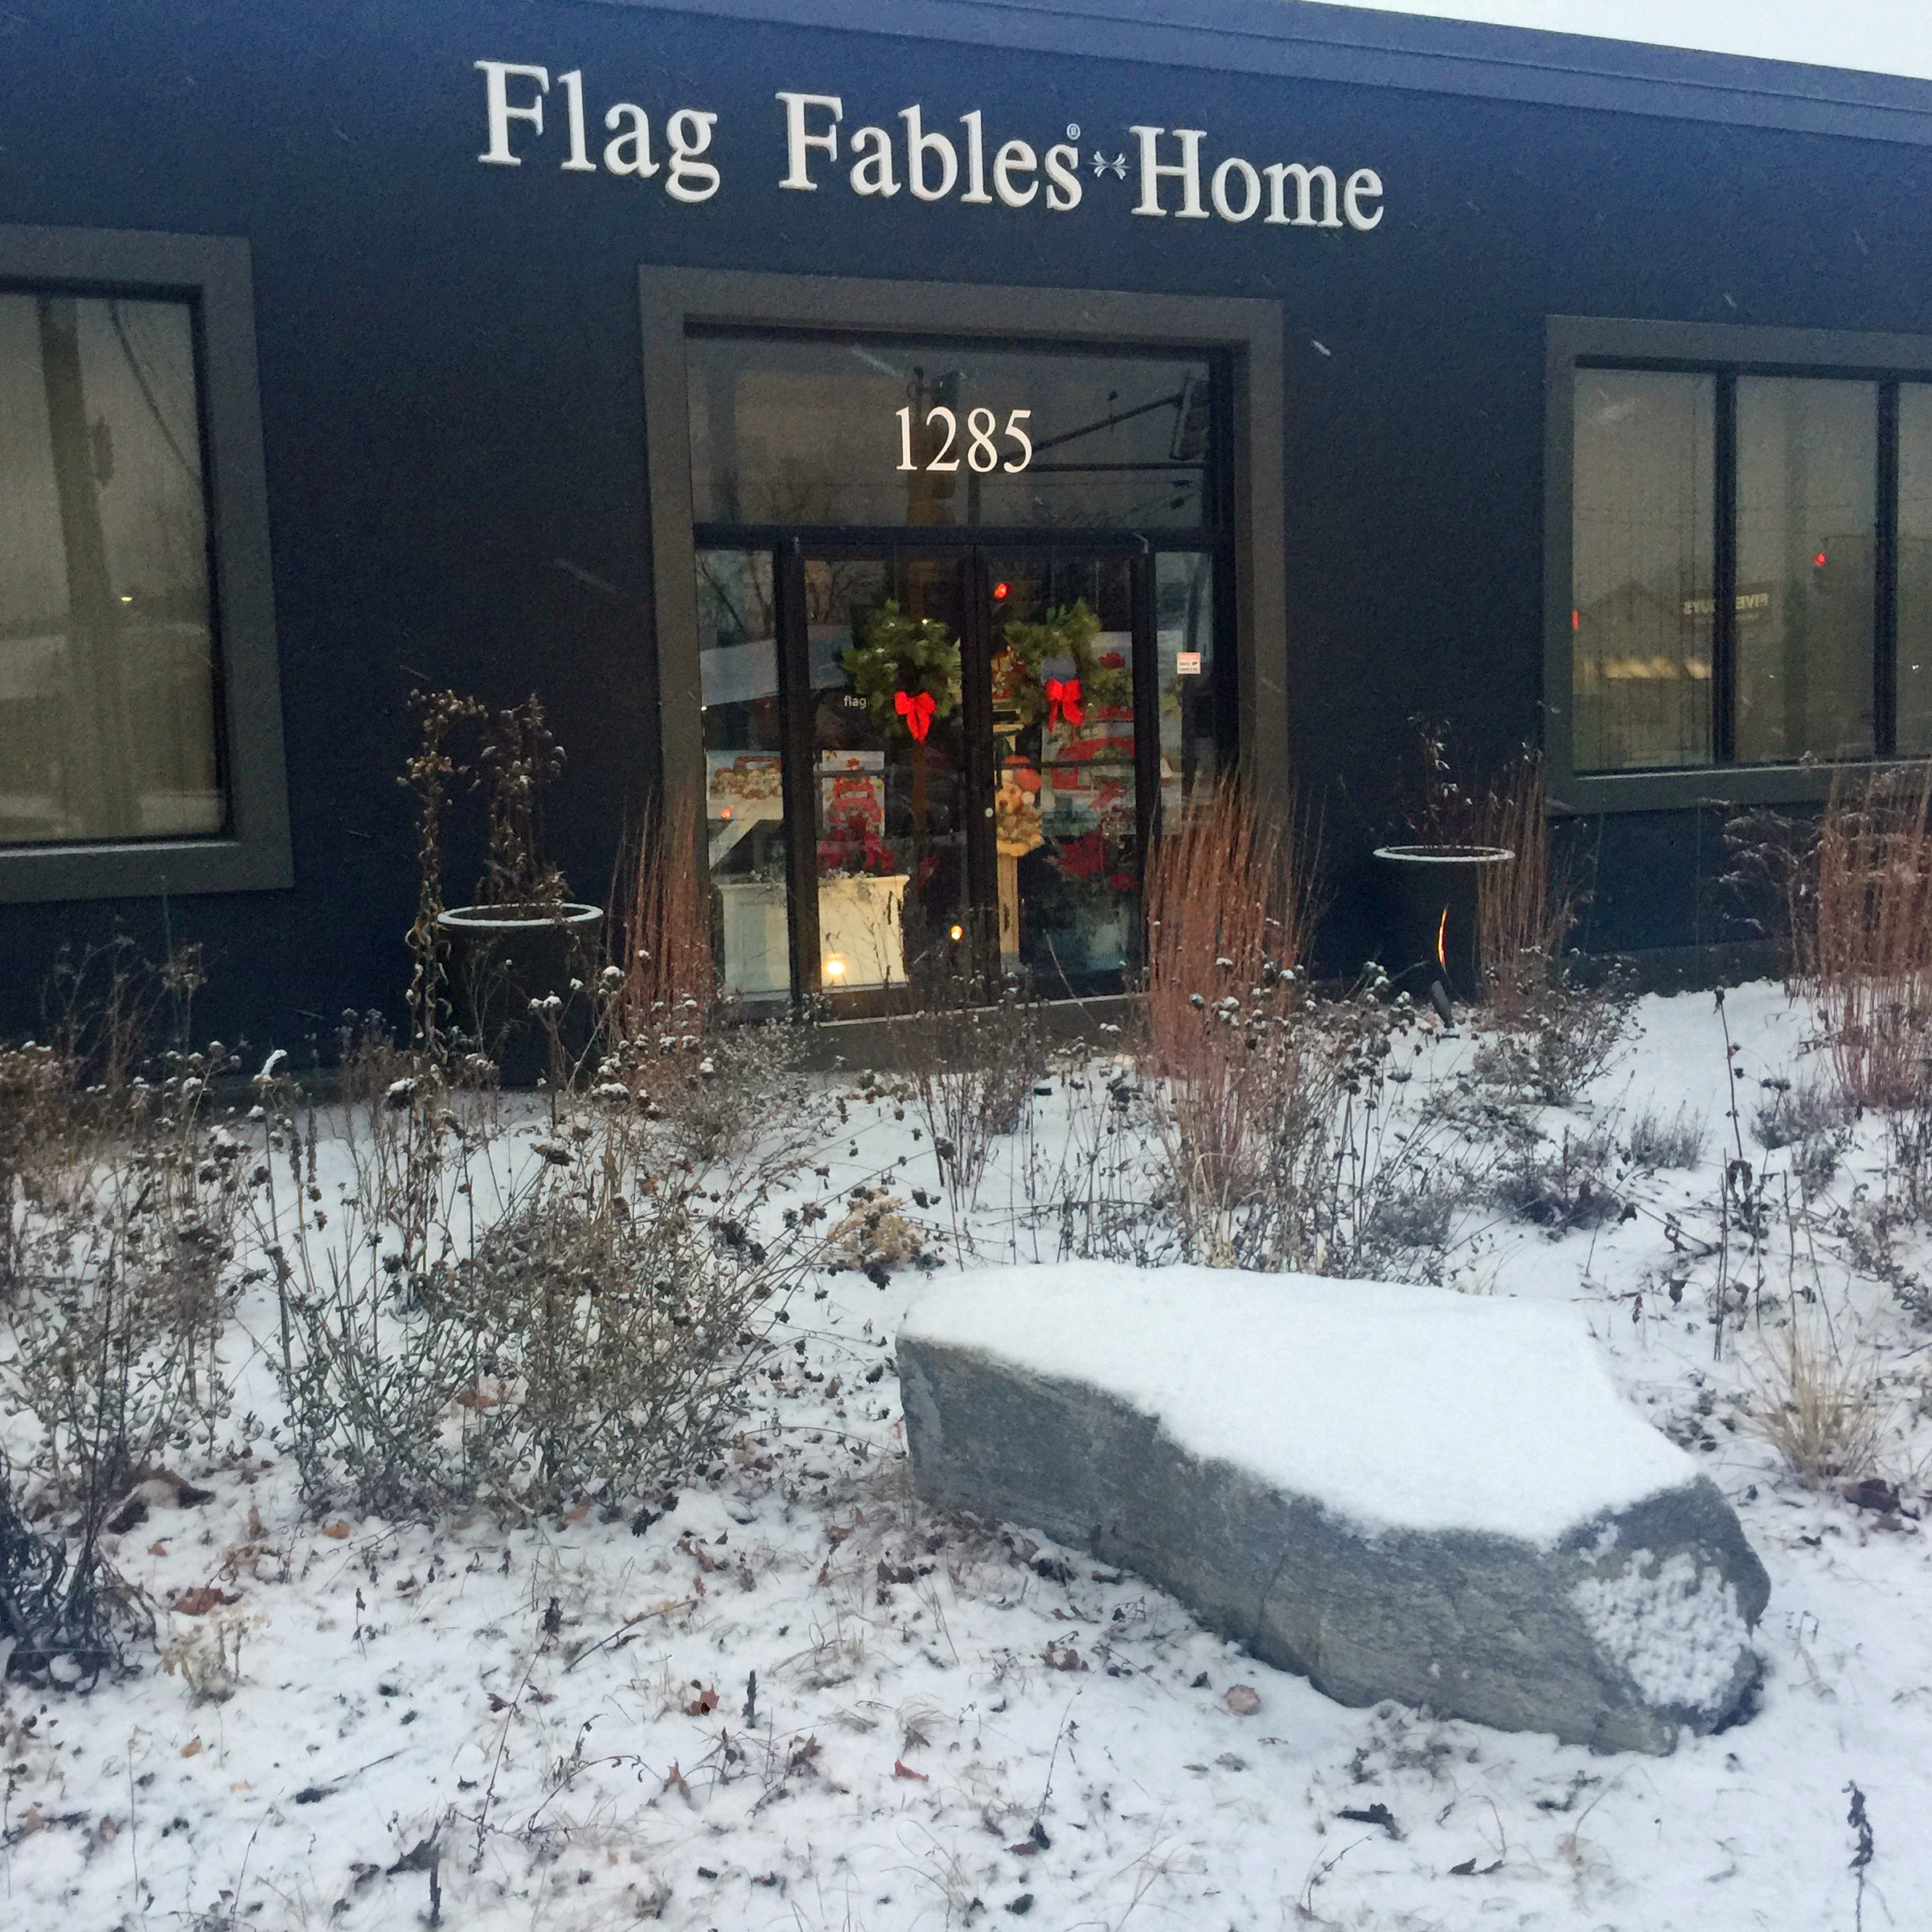 Happy Holidays from Flag Fables!